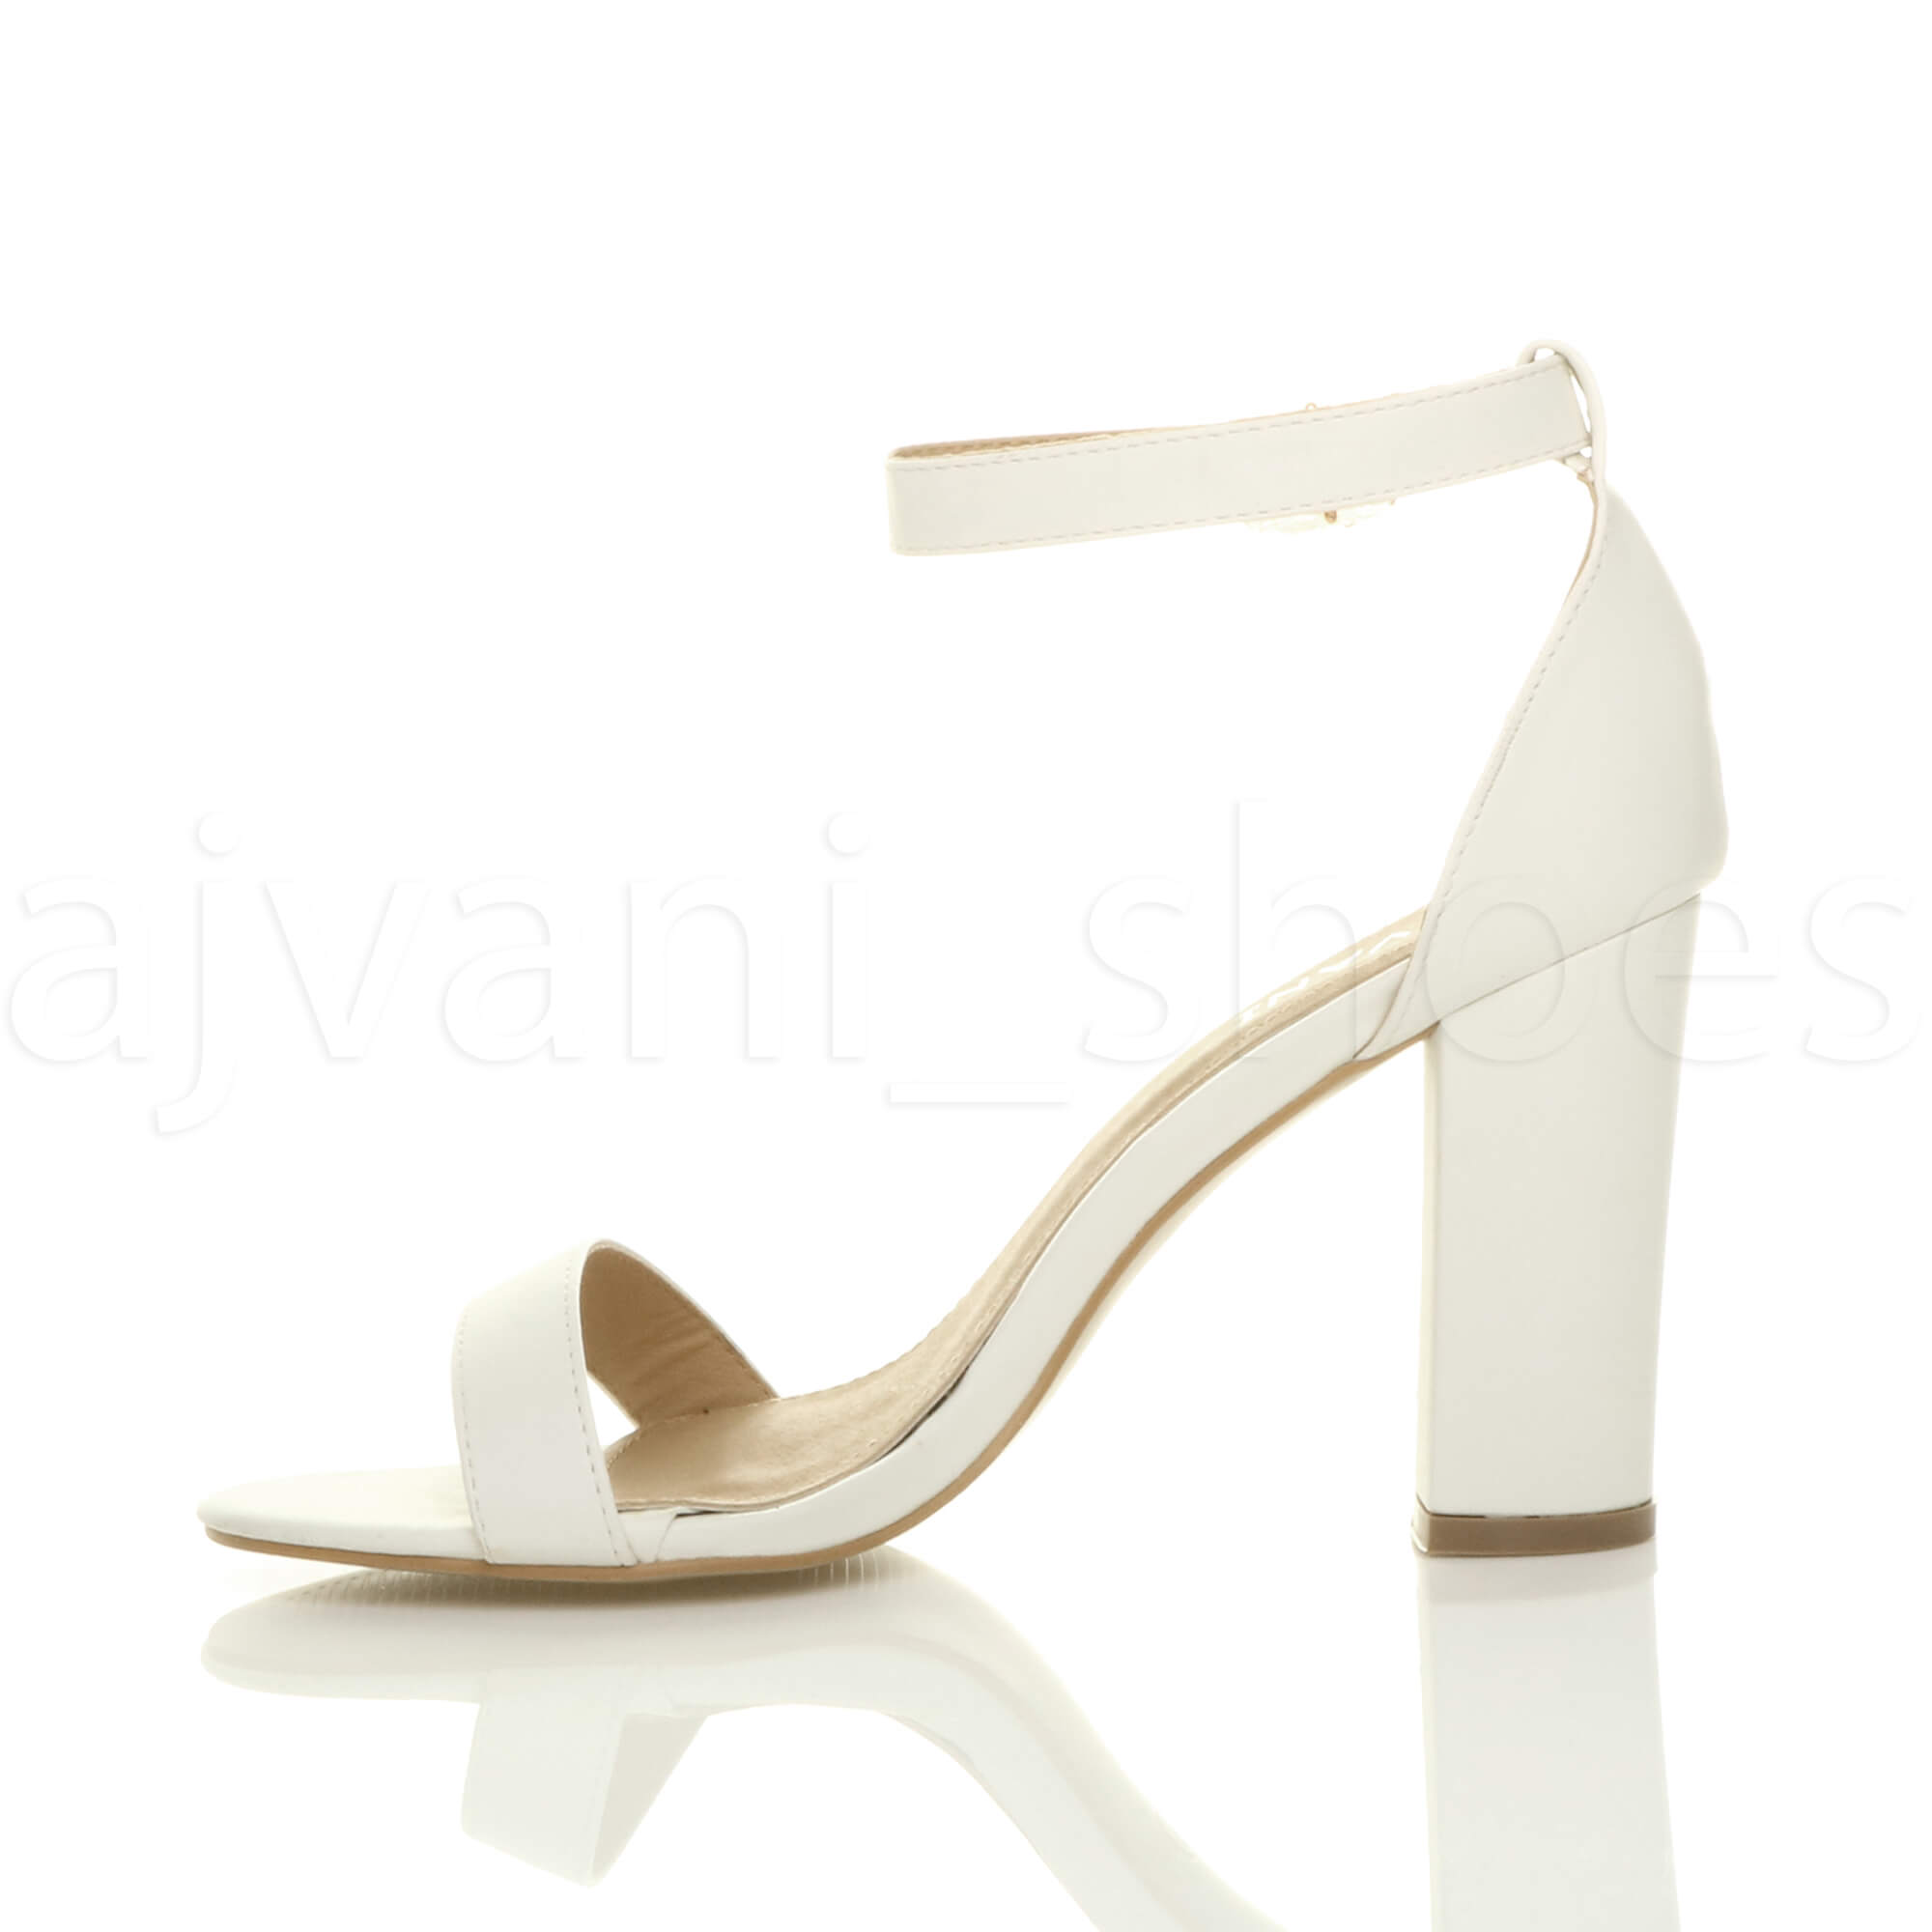 WOMENS-LADIES-BLOCK-HIGH-HEEL-ANKLE-STRAP-PEEP-TOE-STRAPPY-SANDALS-SHOES-SIZE thumbnail 169